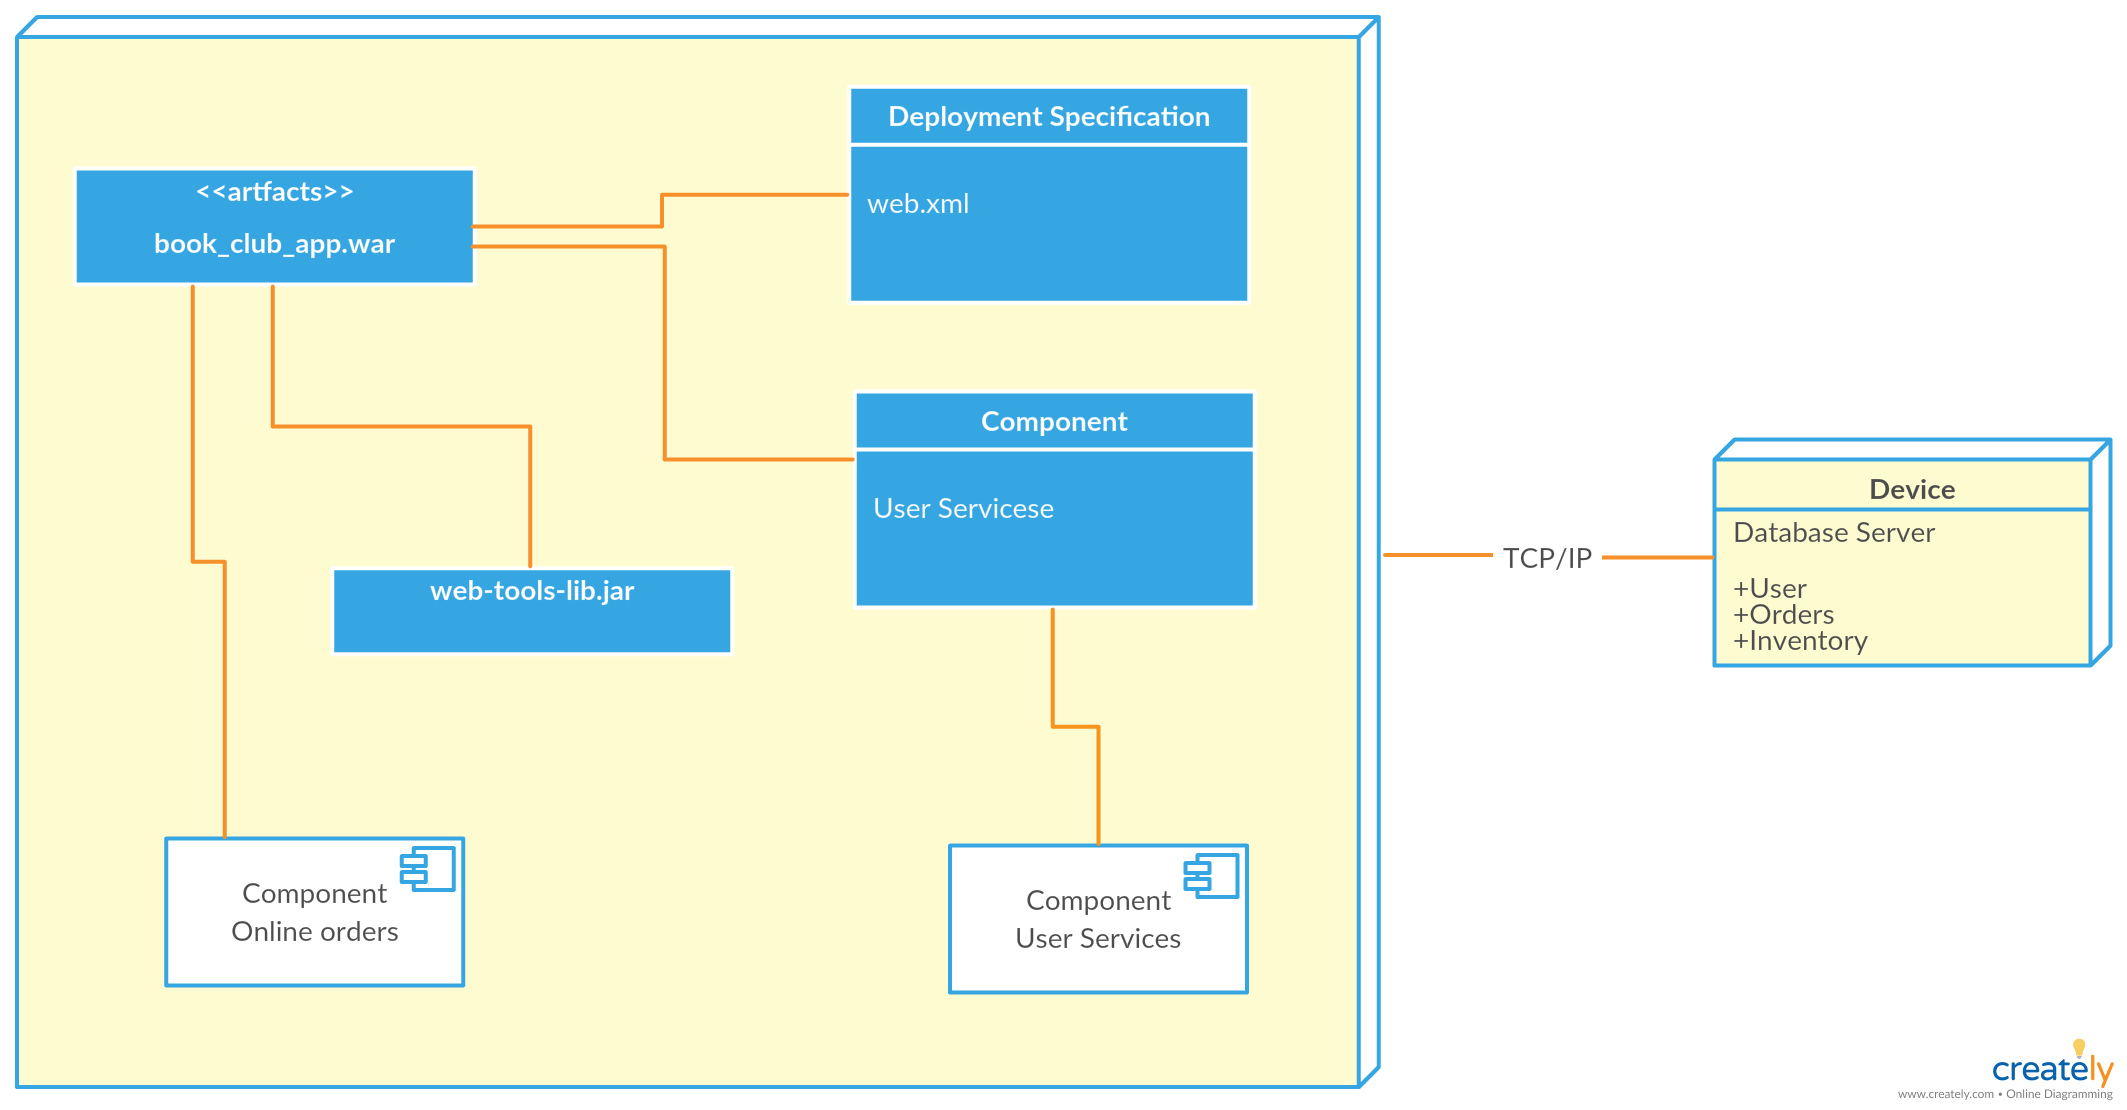 medium resolution of deployment diagram for online shopping system deployment diagram template illustrates the online shopping system